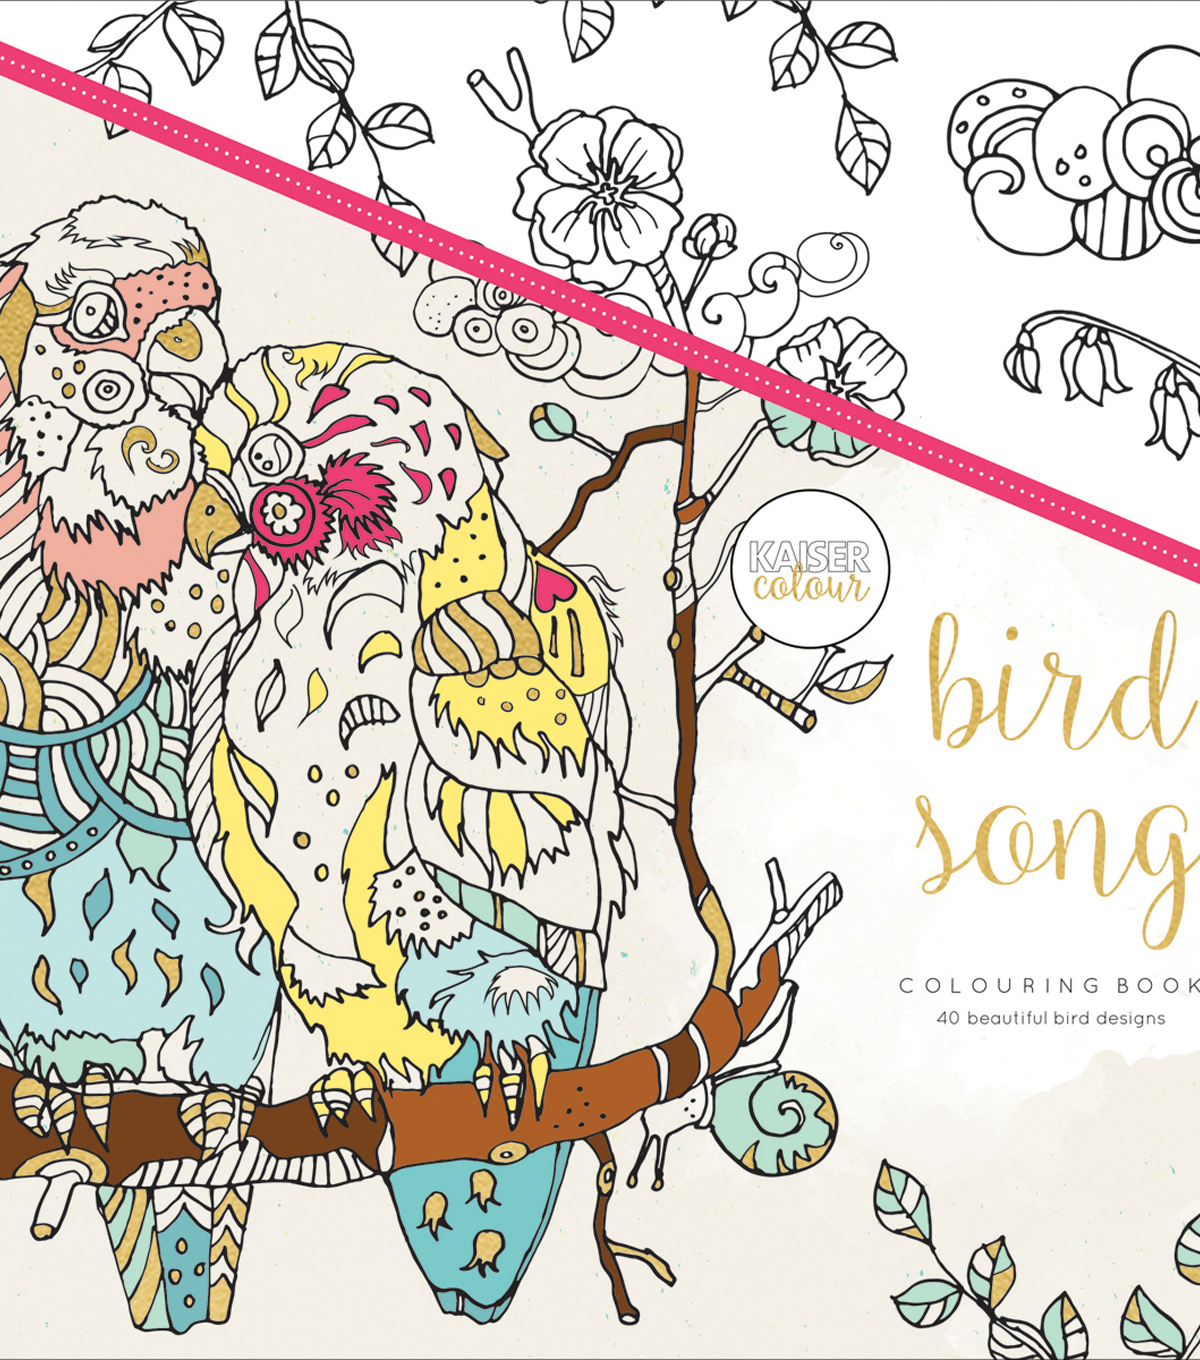 Bird Song -kaiser Coloring Book